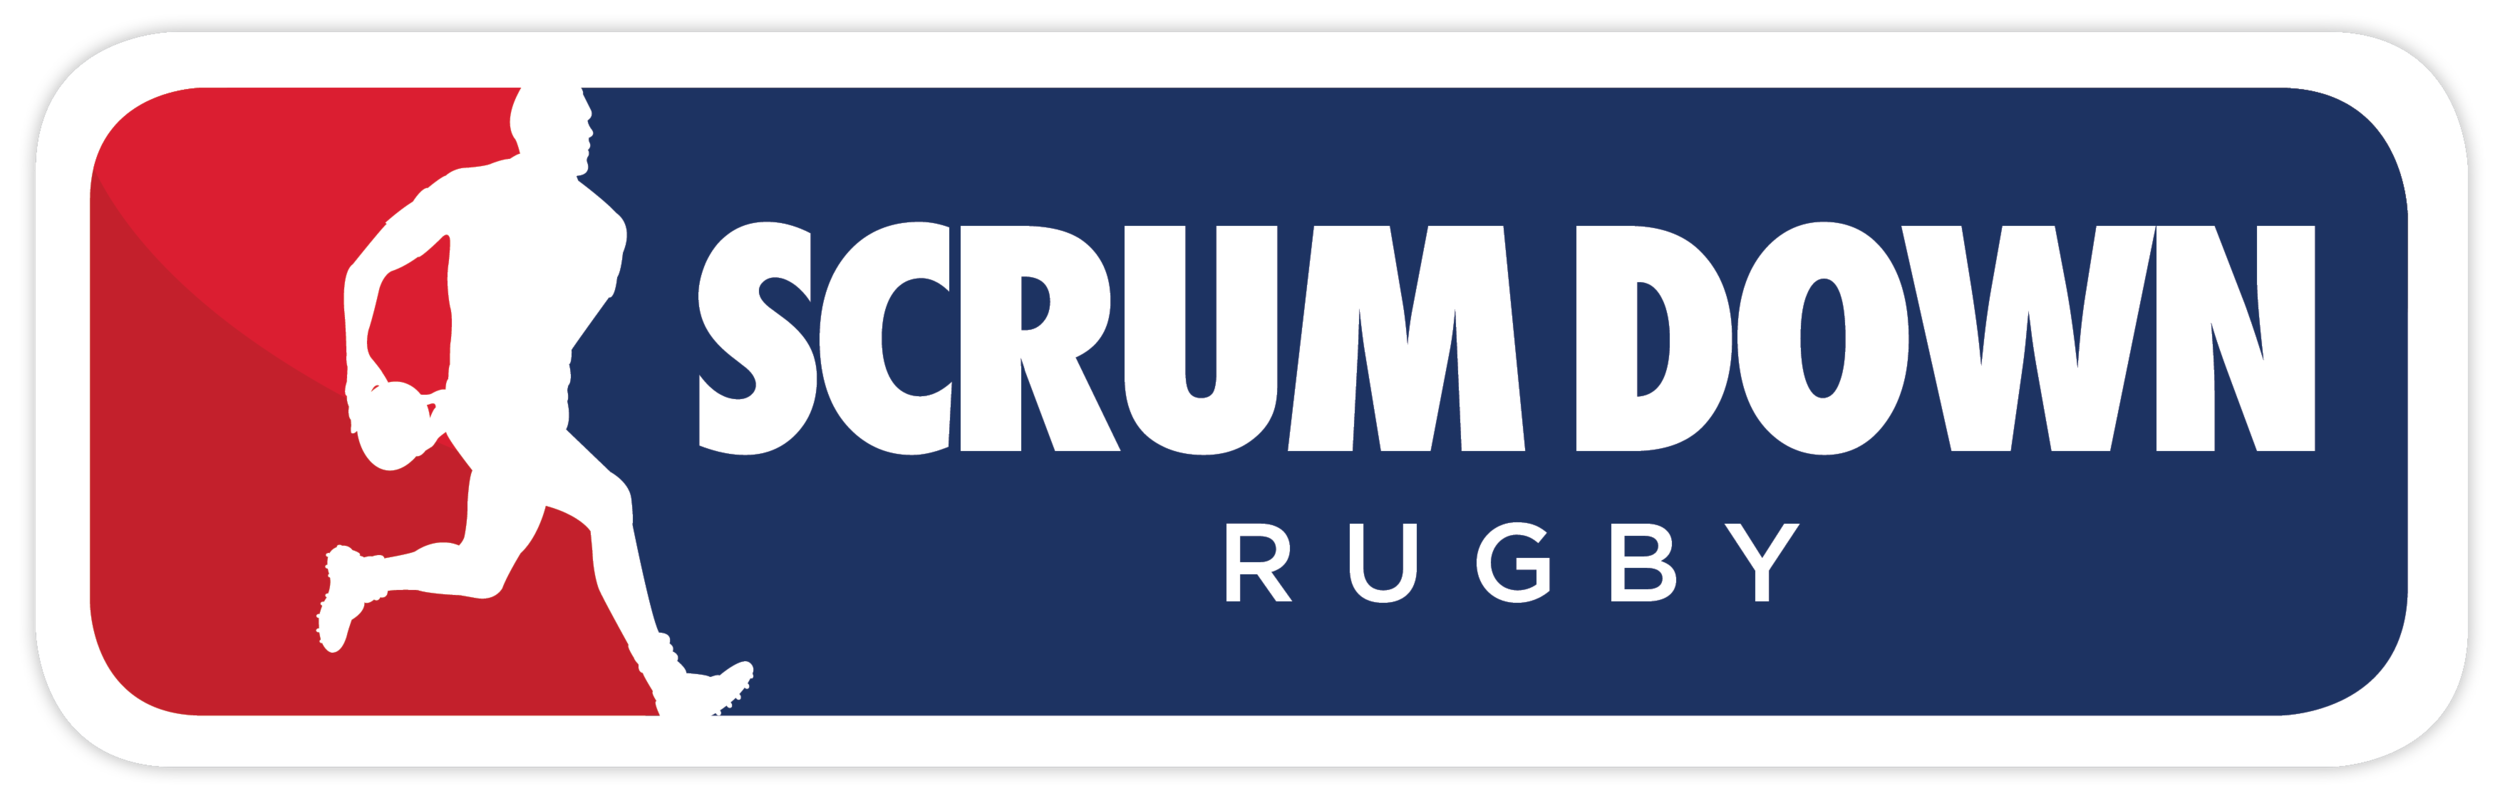 Scrum Down Rugby.png